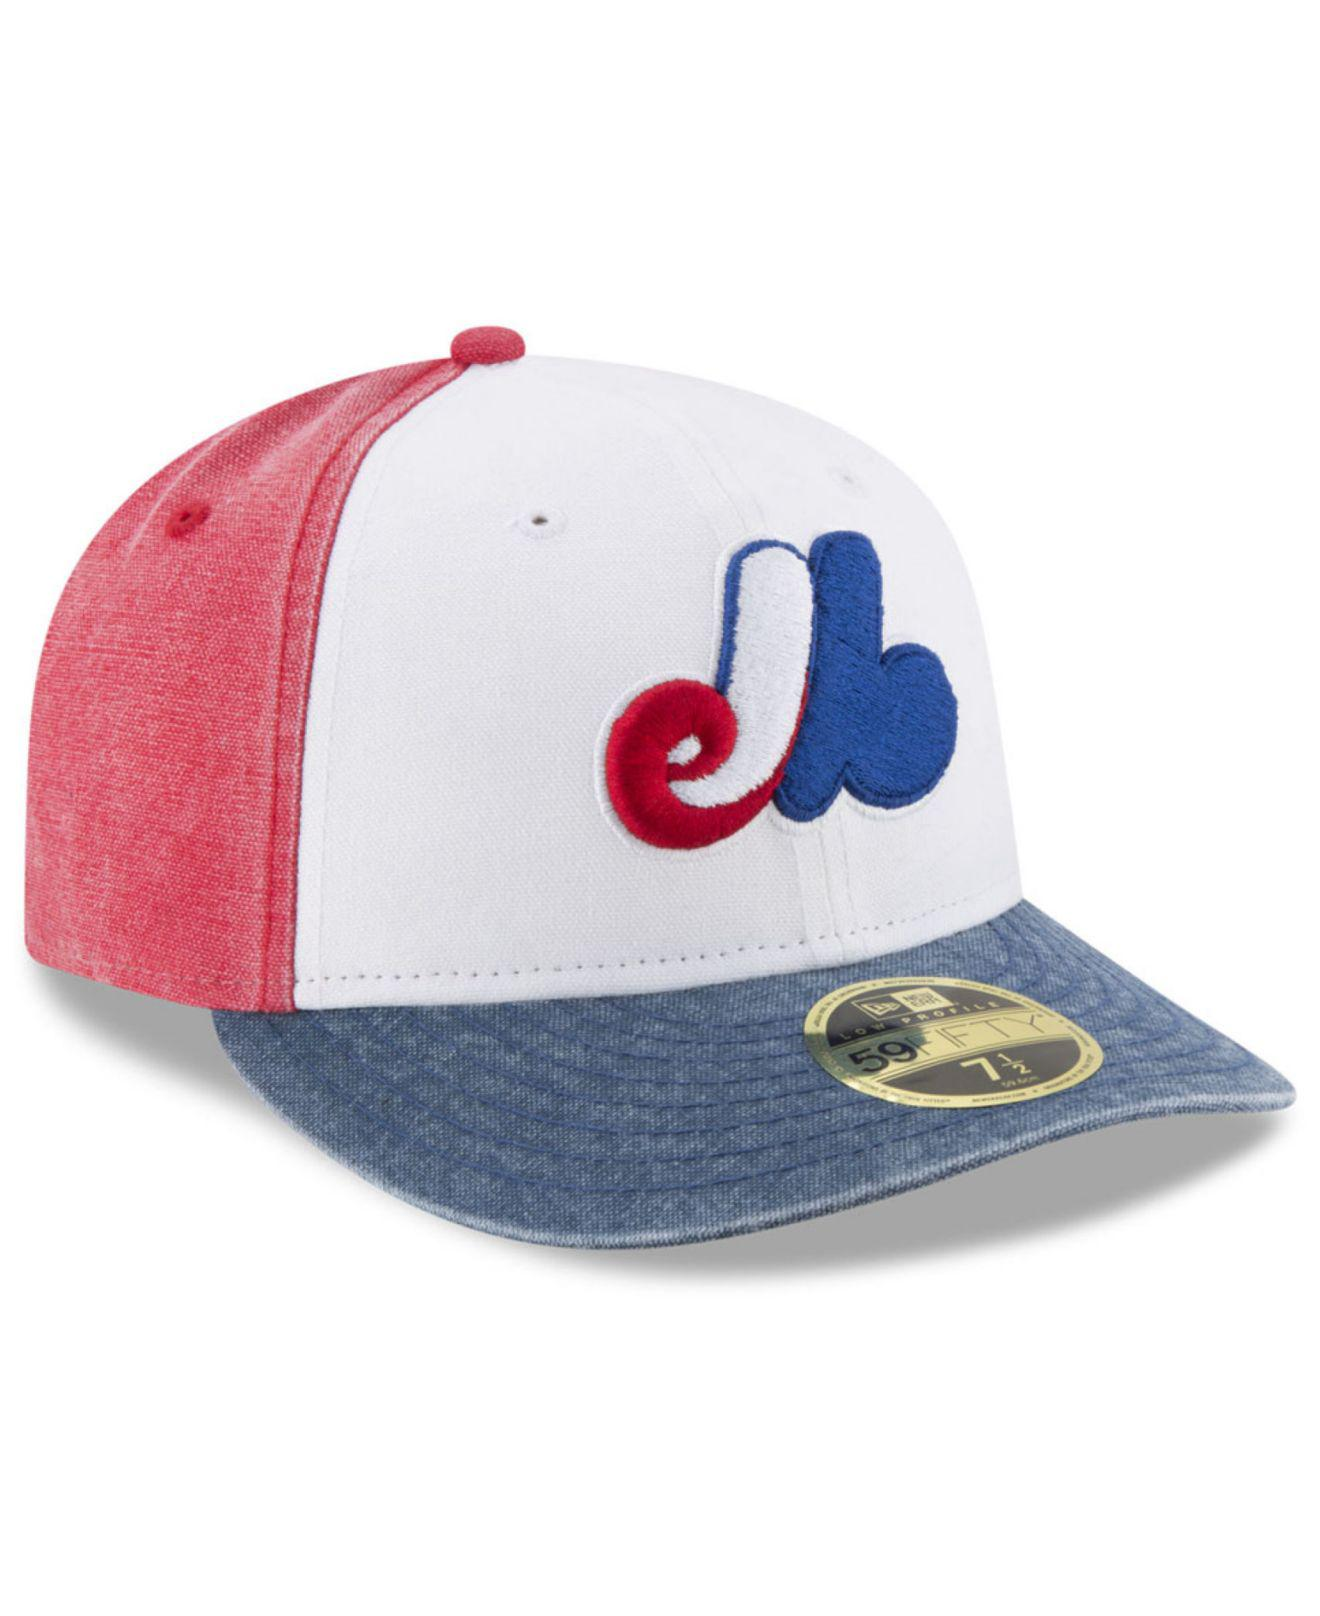 quality design 80a10 bc8bf KTZ Montreal Expos 59fifty Bro Cap for Men - Lyst